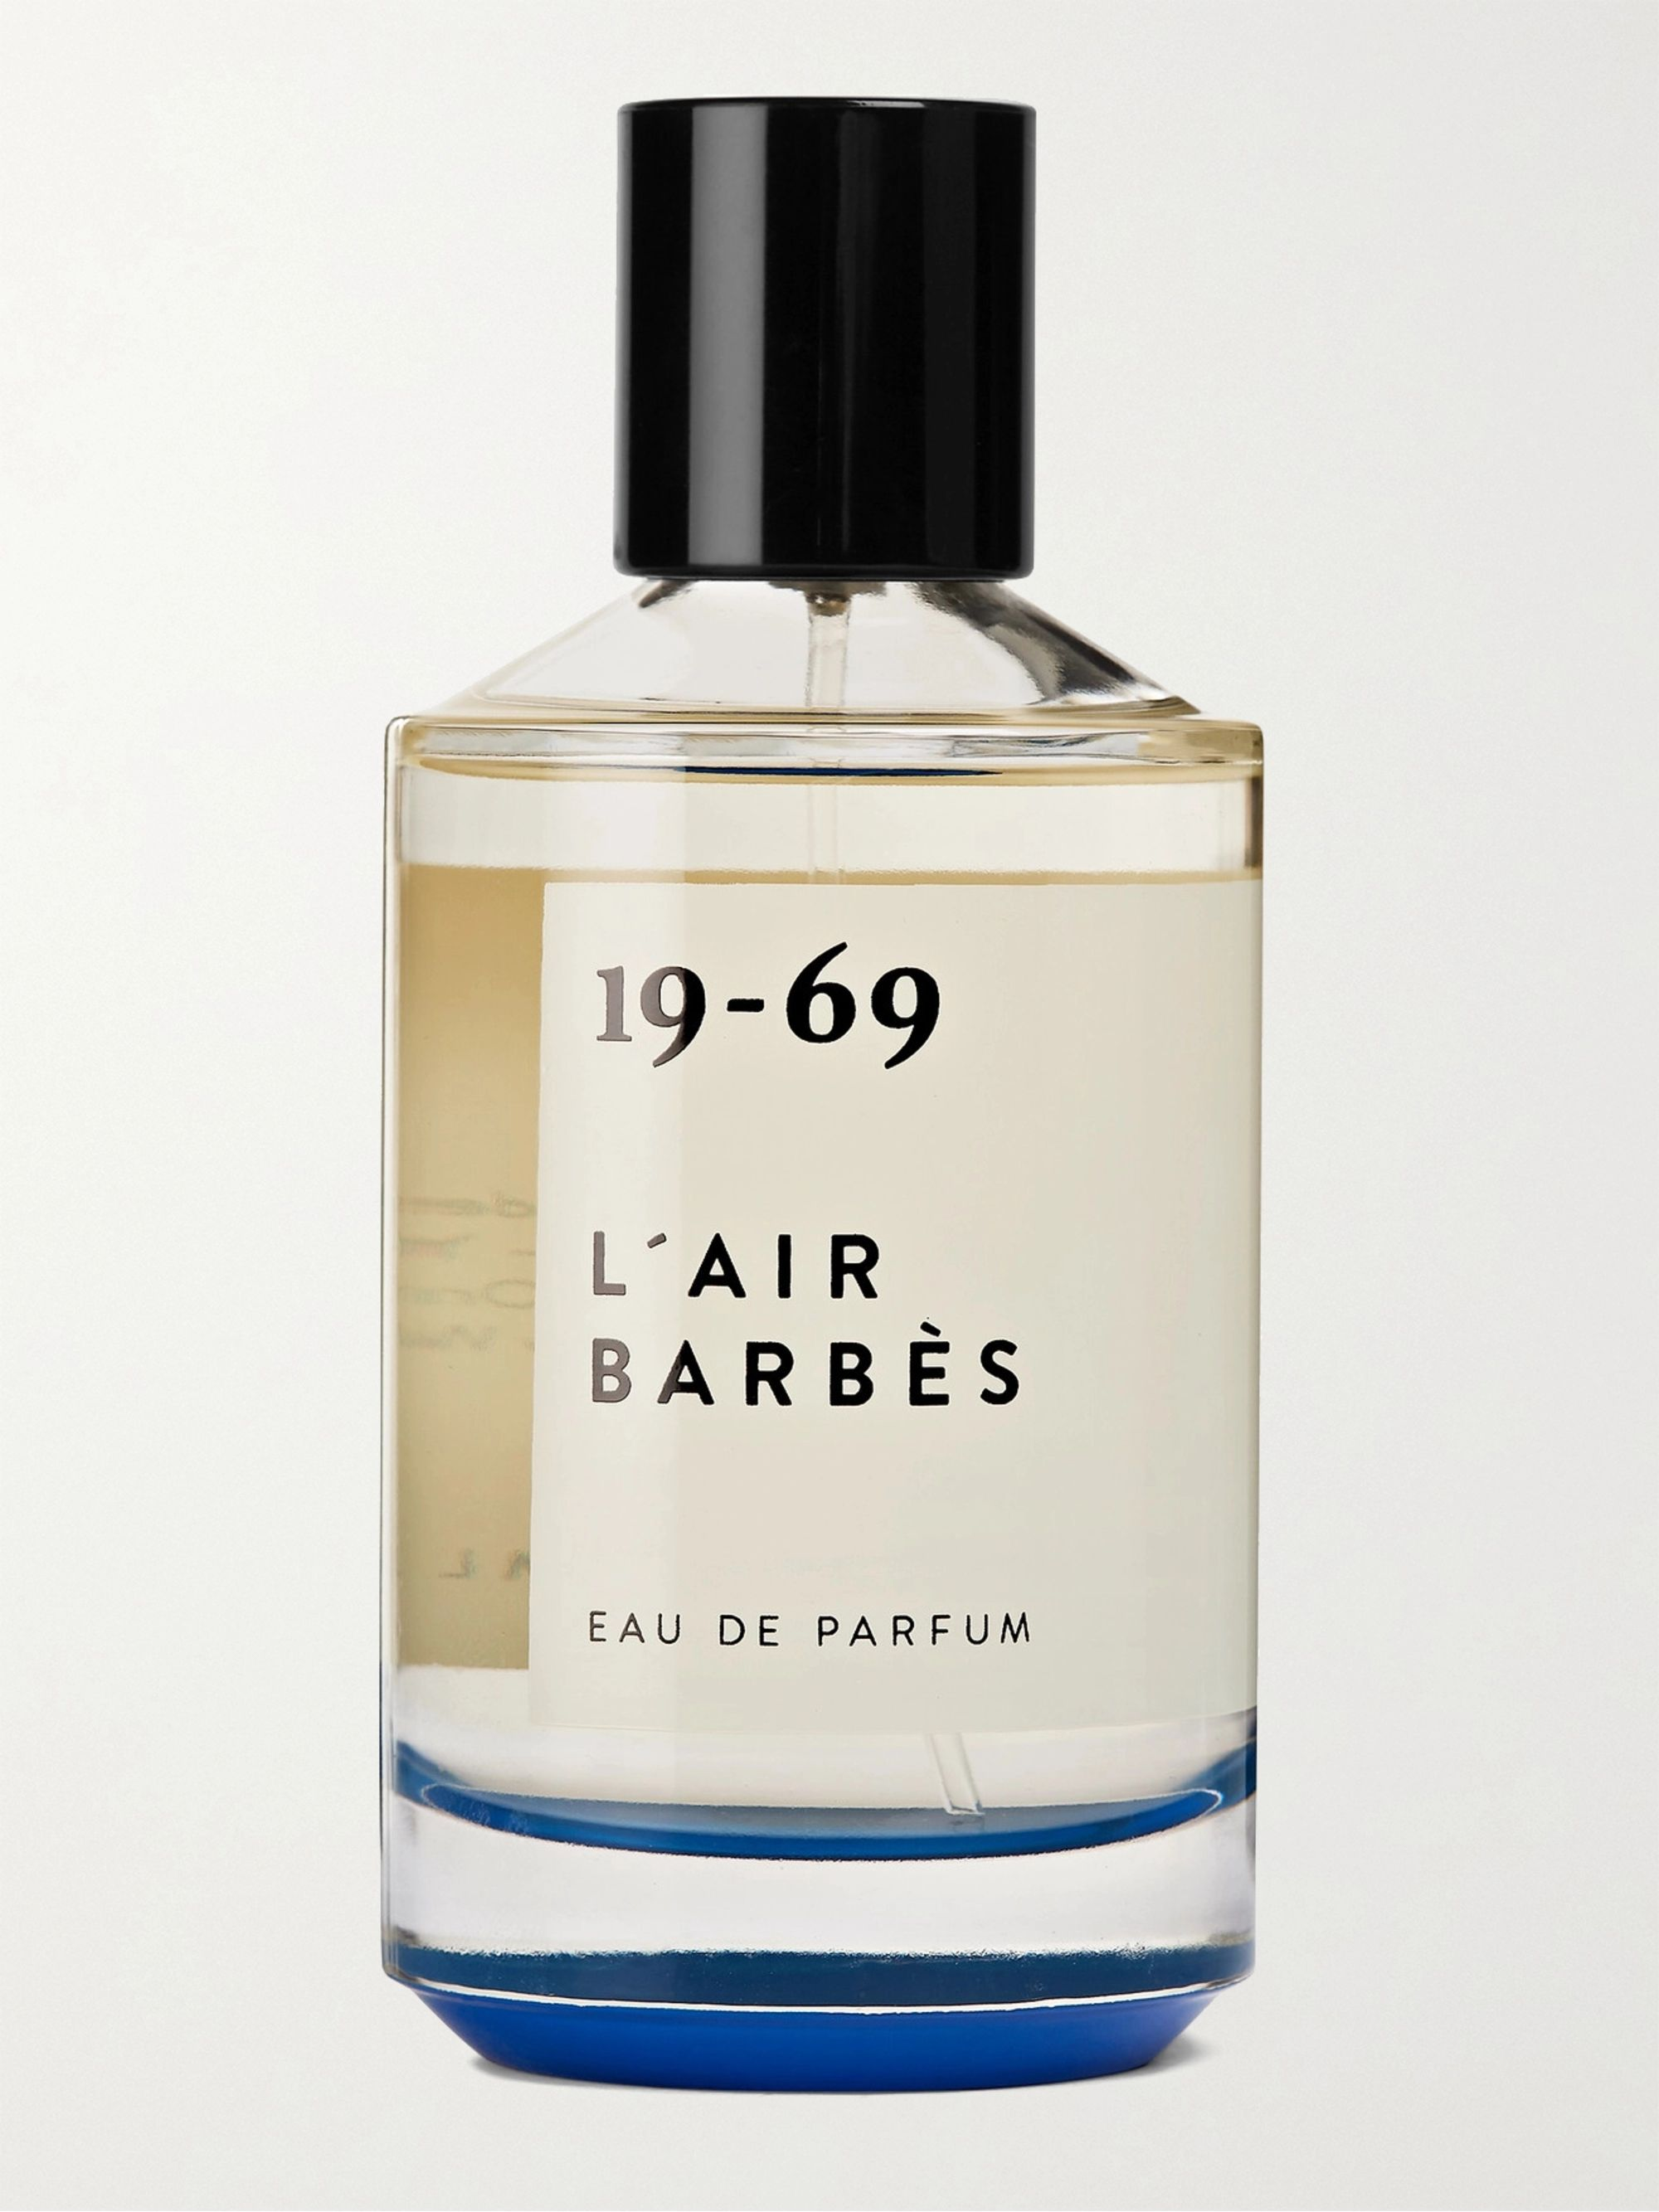 19-69 L'Air Barbes Eau de Parfum, 100ml